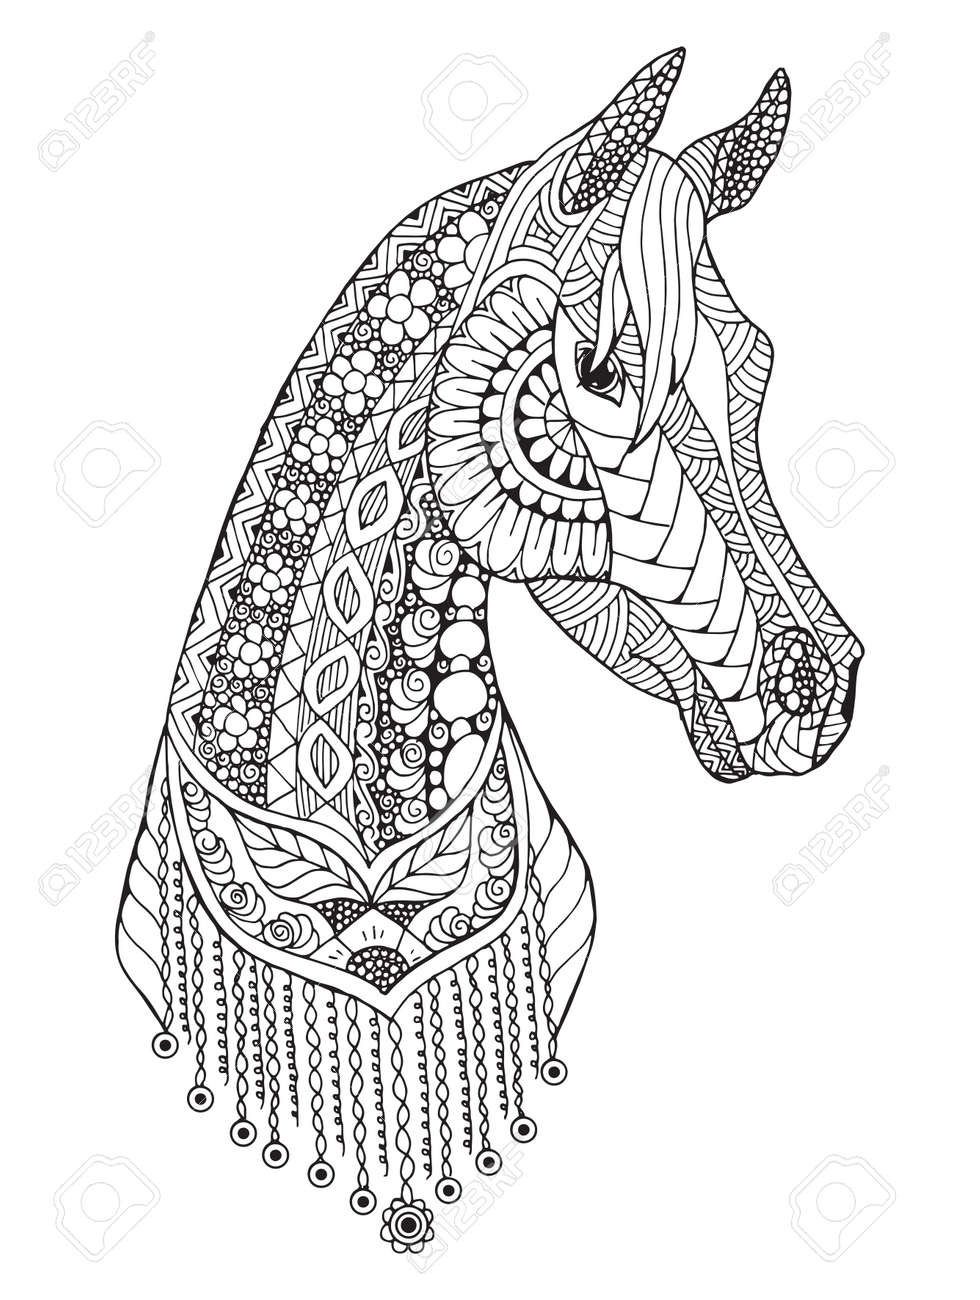 Coloriage Cheval Zen.Cheval Arabe Zentangle Stylise Vecteur Illustration Crayon A Main